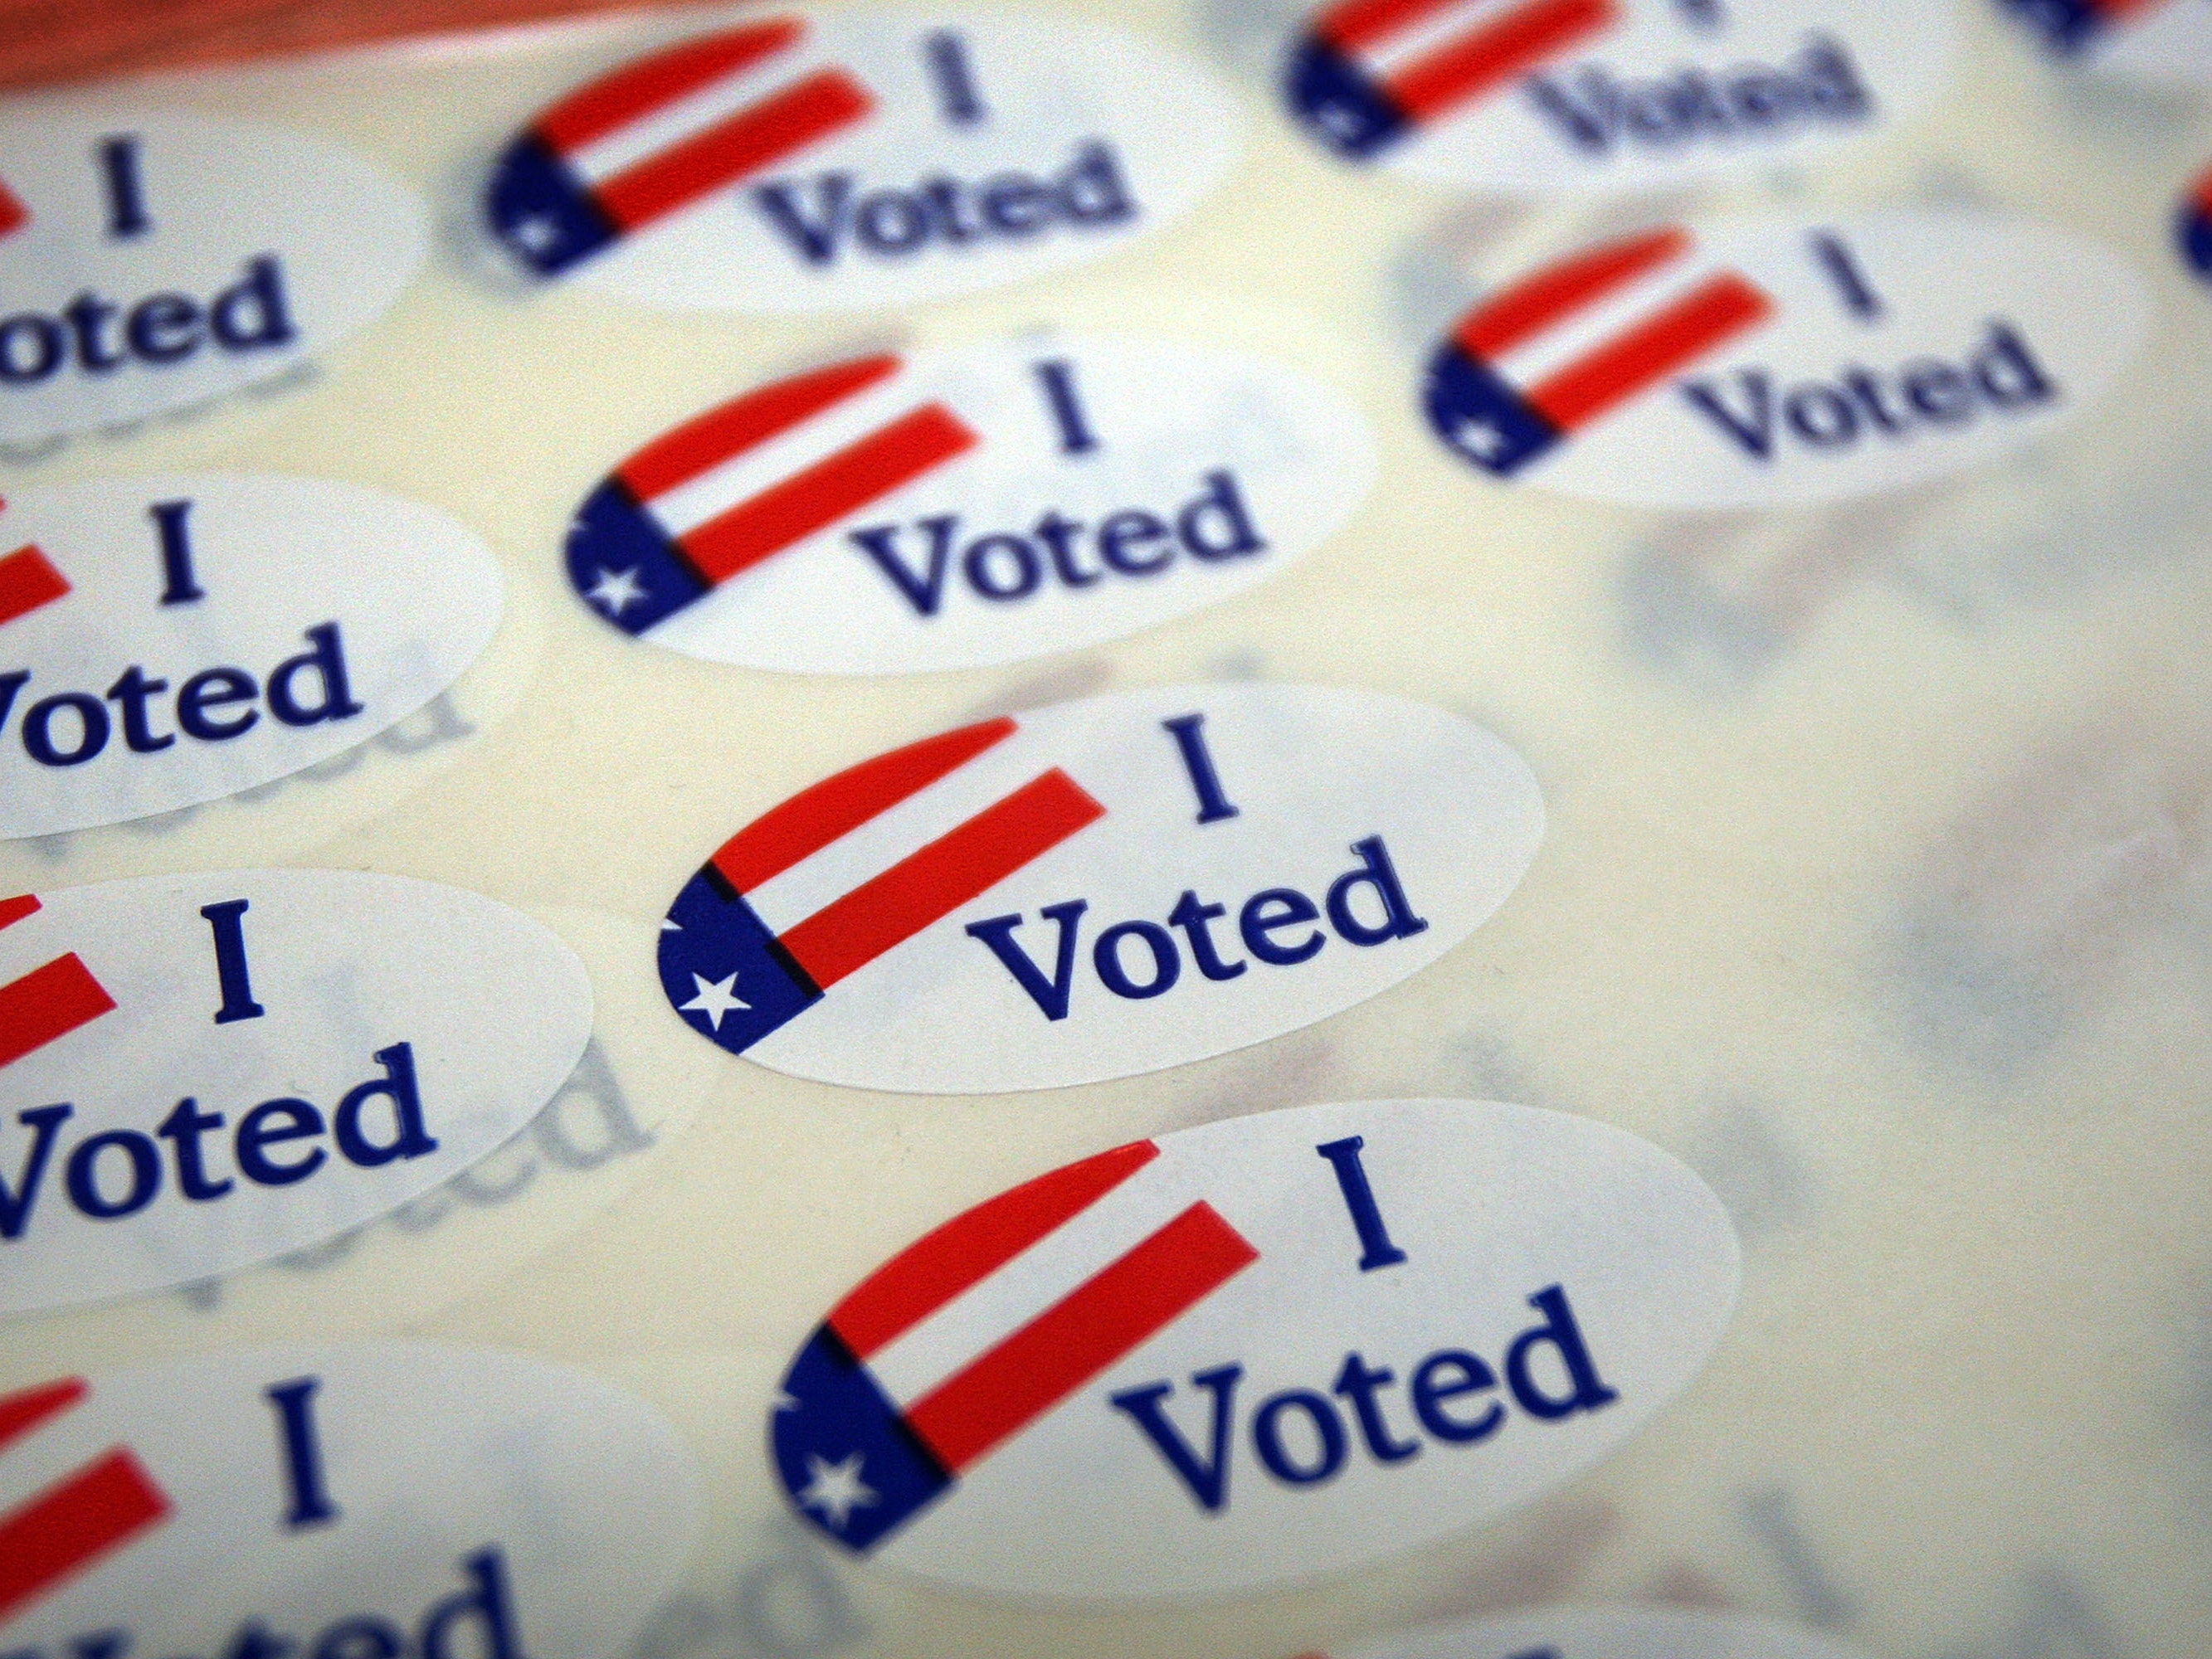 PASADENA, CA - MAY 19:  A sheet of voter stickers is seen inside Fire Station 38, as people go to the polls for a special election called by Gov. Arnold Schwarzenegger and lawmakers to decide on statewide budget-balancing ballot propositions on May 19, 2009 in Pasadena, California. The governor says that a passage of the suite of measures is crucial to repairing the state budget crisis. The initiatives were put forth to voters after a drawn-out battle between politicians to solve the deficit which has resulted in painful cuts to education and services and the loss of thousands of jobs. The deficit is projected to hit $15.4 billion in the fiscal year that begins in July if voters pass the ballot measures. If not, the deficit will balloon to $21.3 billion, according to the governors office. Polls though indicate that Proposition 1F, which prohibits the governor, lawmakers and other state officials from getting pay raises any time the state has a budget deficit, is the only one of the six measures that appears to have enough support to pass. It is the 12th times in seven years that Californians have been faced with complex budget measures. Voter turnout is expected to be low.  (Photo by David McNew/Getty Images)